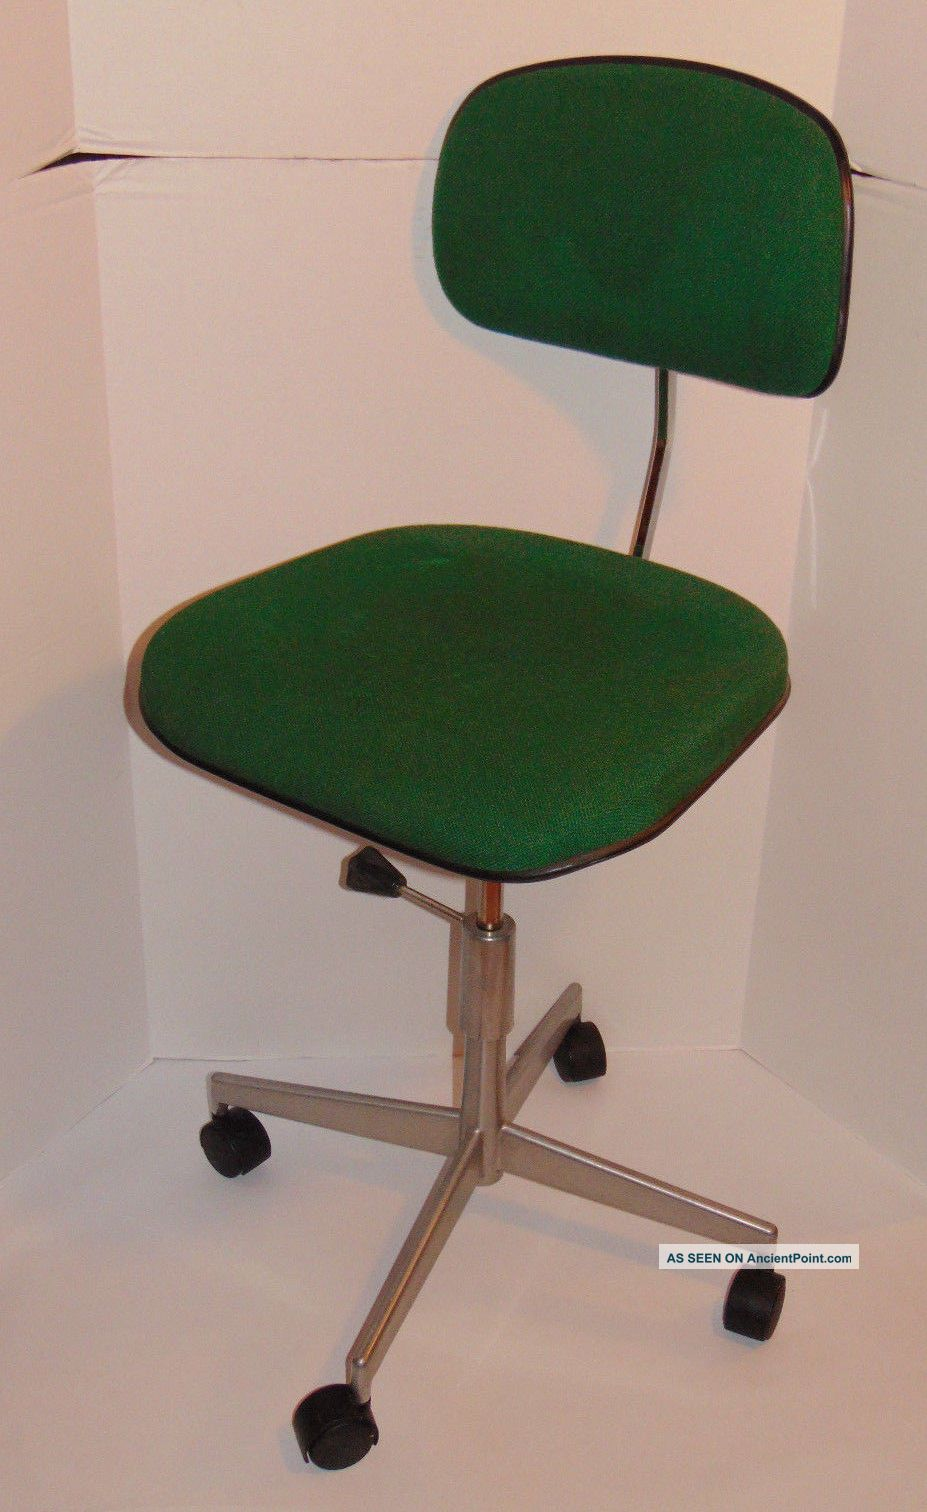 Vintage Labofa Desk/task Danish Chair Green Fabric 4 Casters Made In Denmark Post-1950 photo